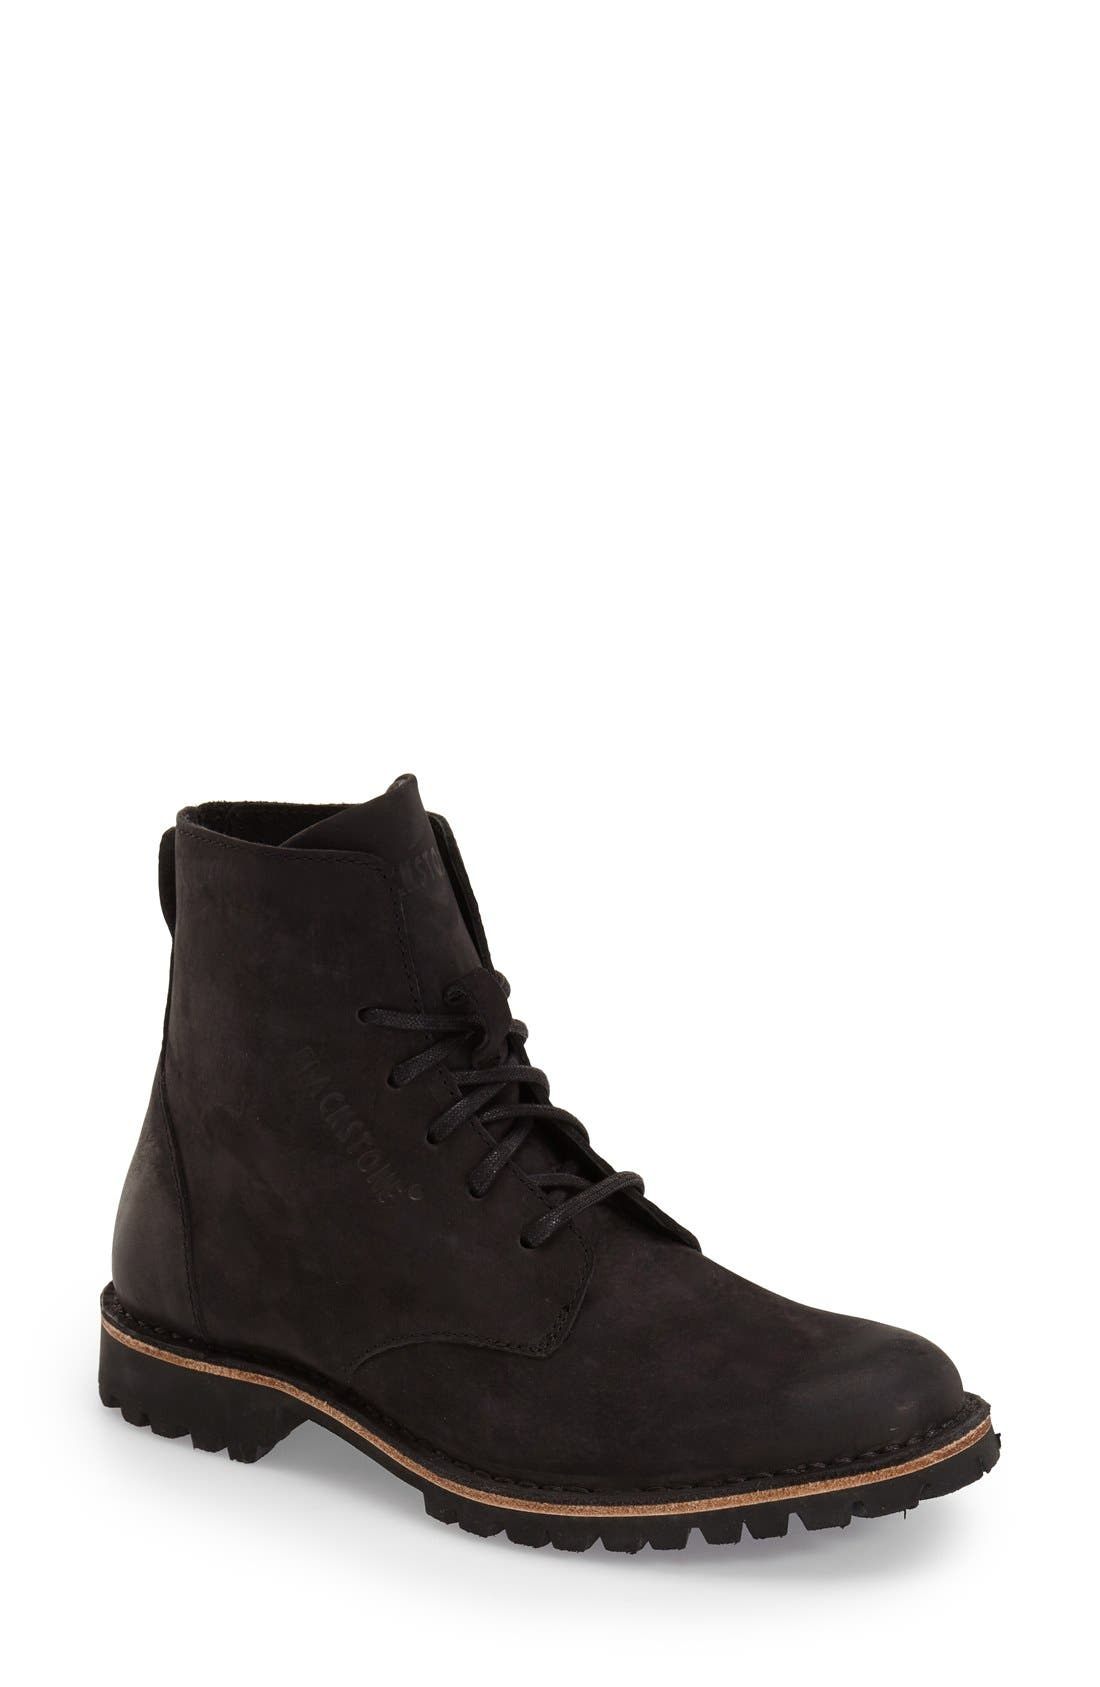 'KL67' Lace-Up Boot,                             Main thumbnail 1, color,                             BLACK LEATHER